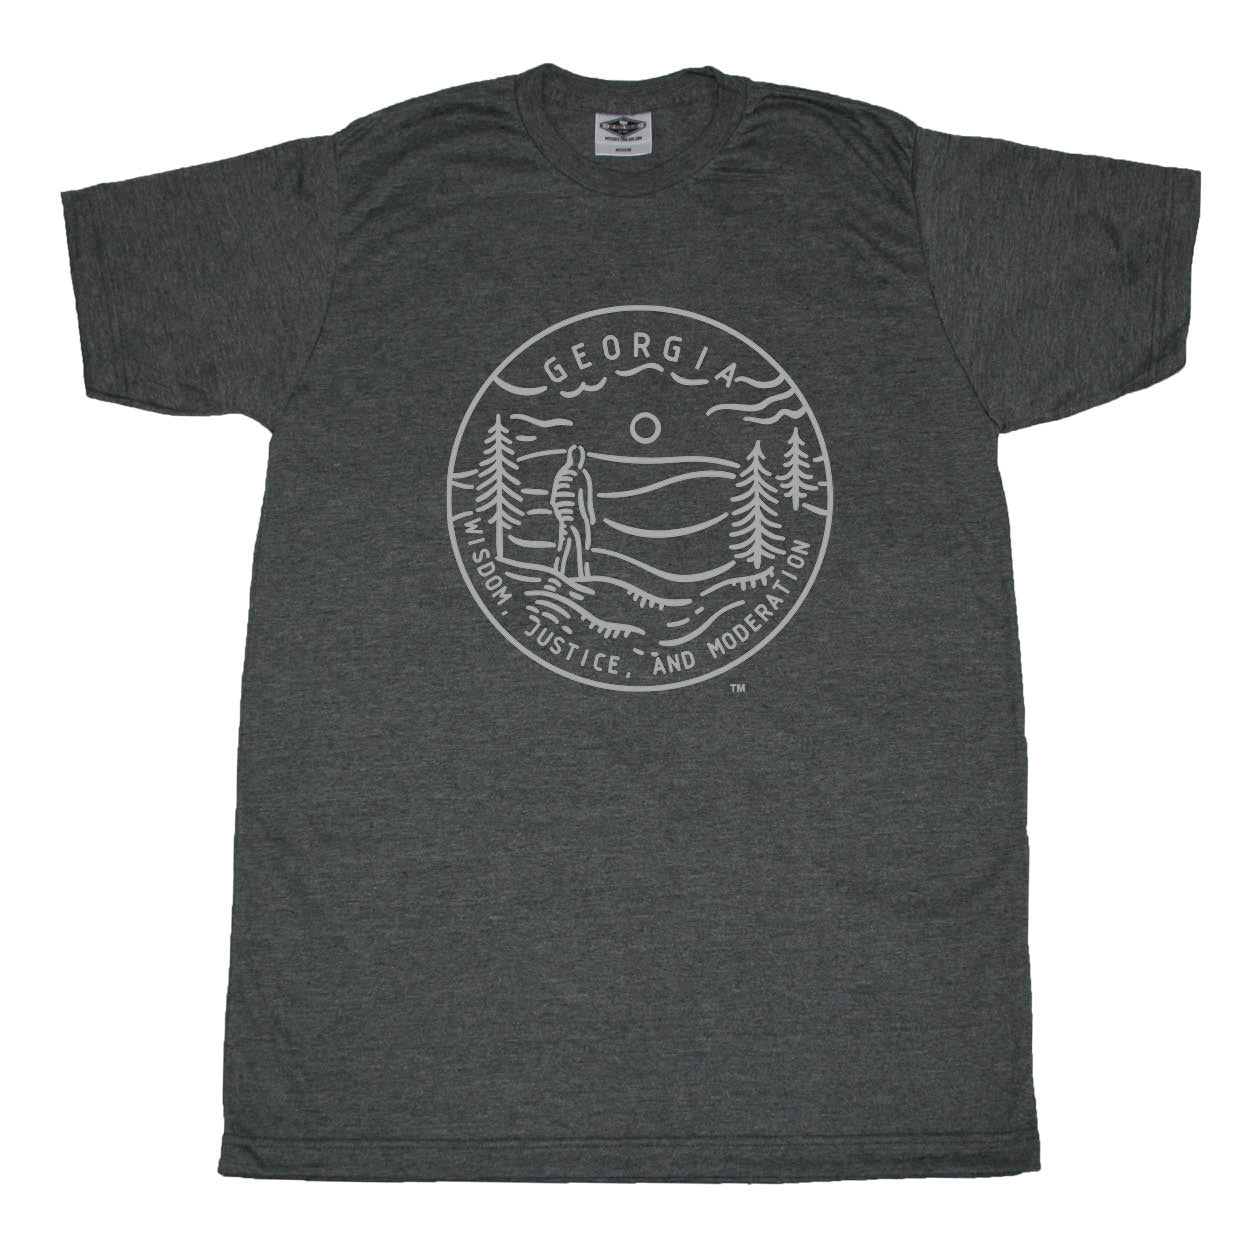 GEORGIA TEE | STATE SEAL | WISDOM, JUSTICE, AND MODERATION